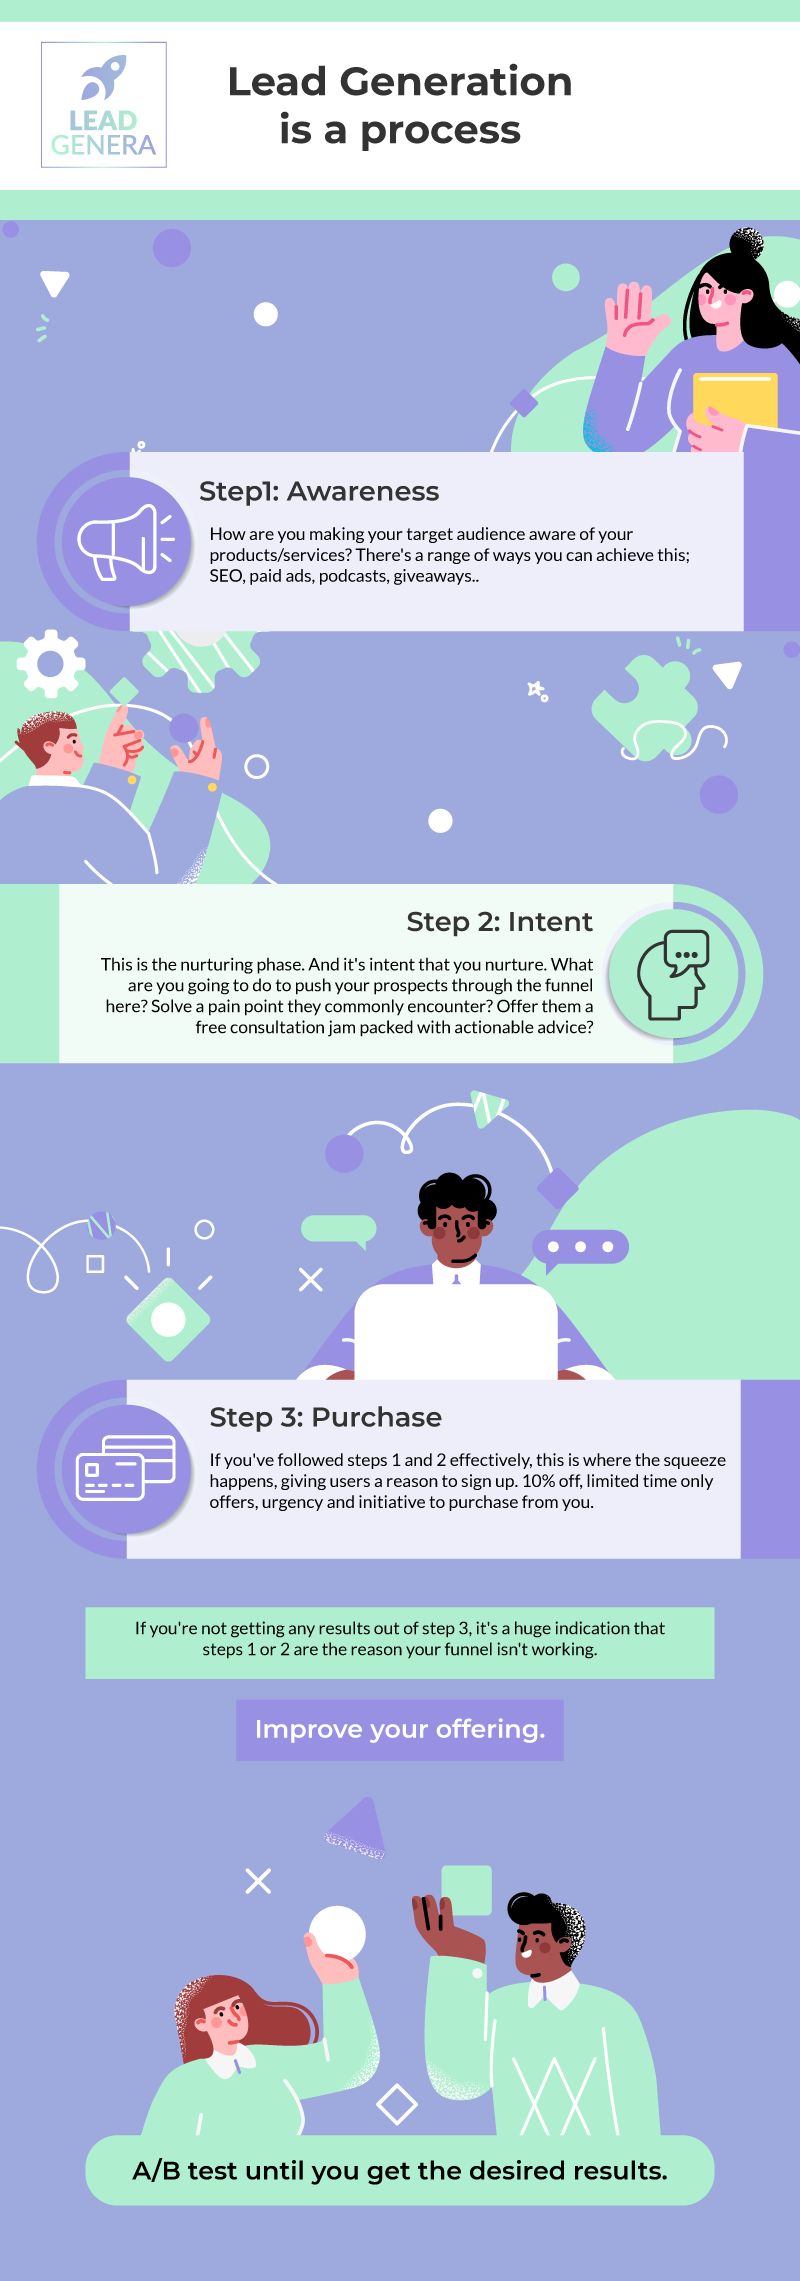 How To Create a Lead Generation Funnel with Infographic